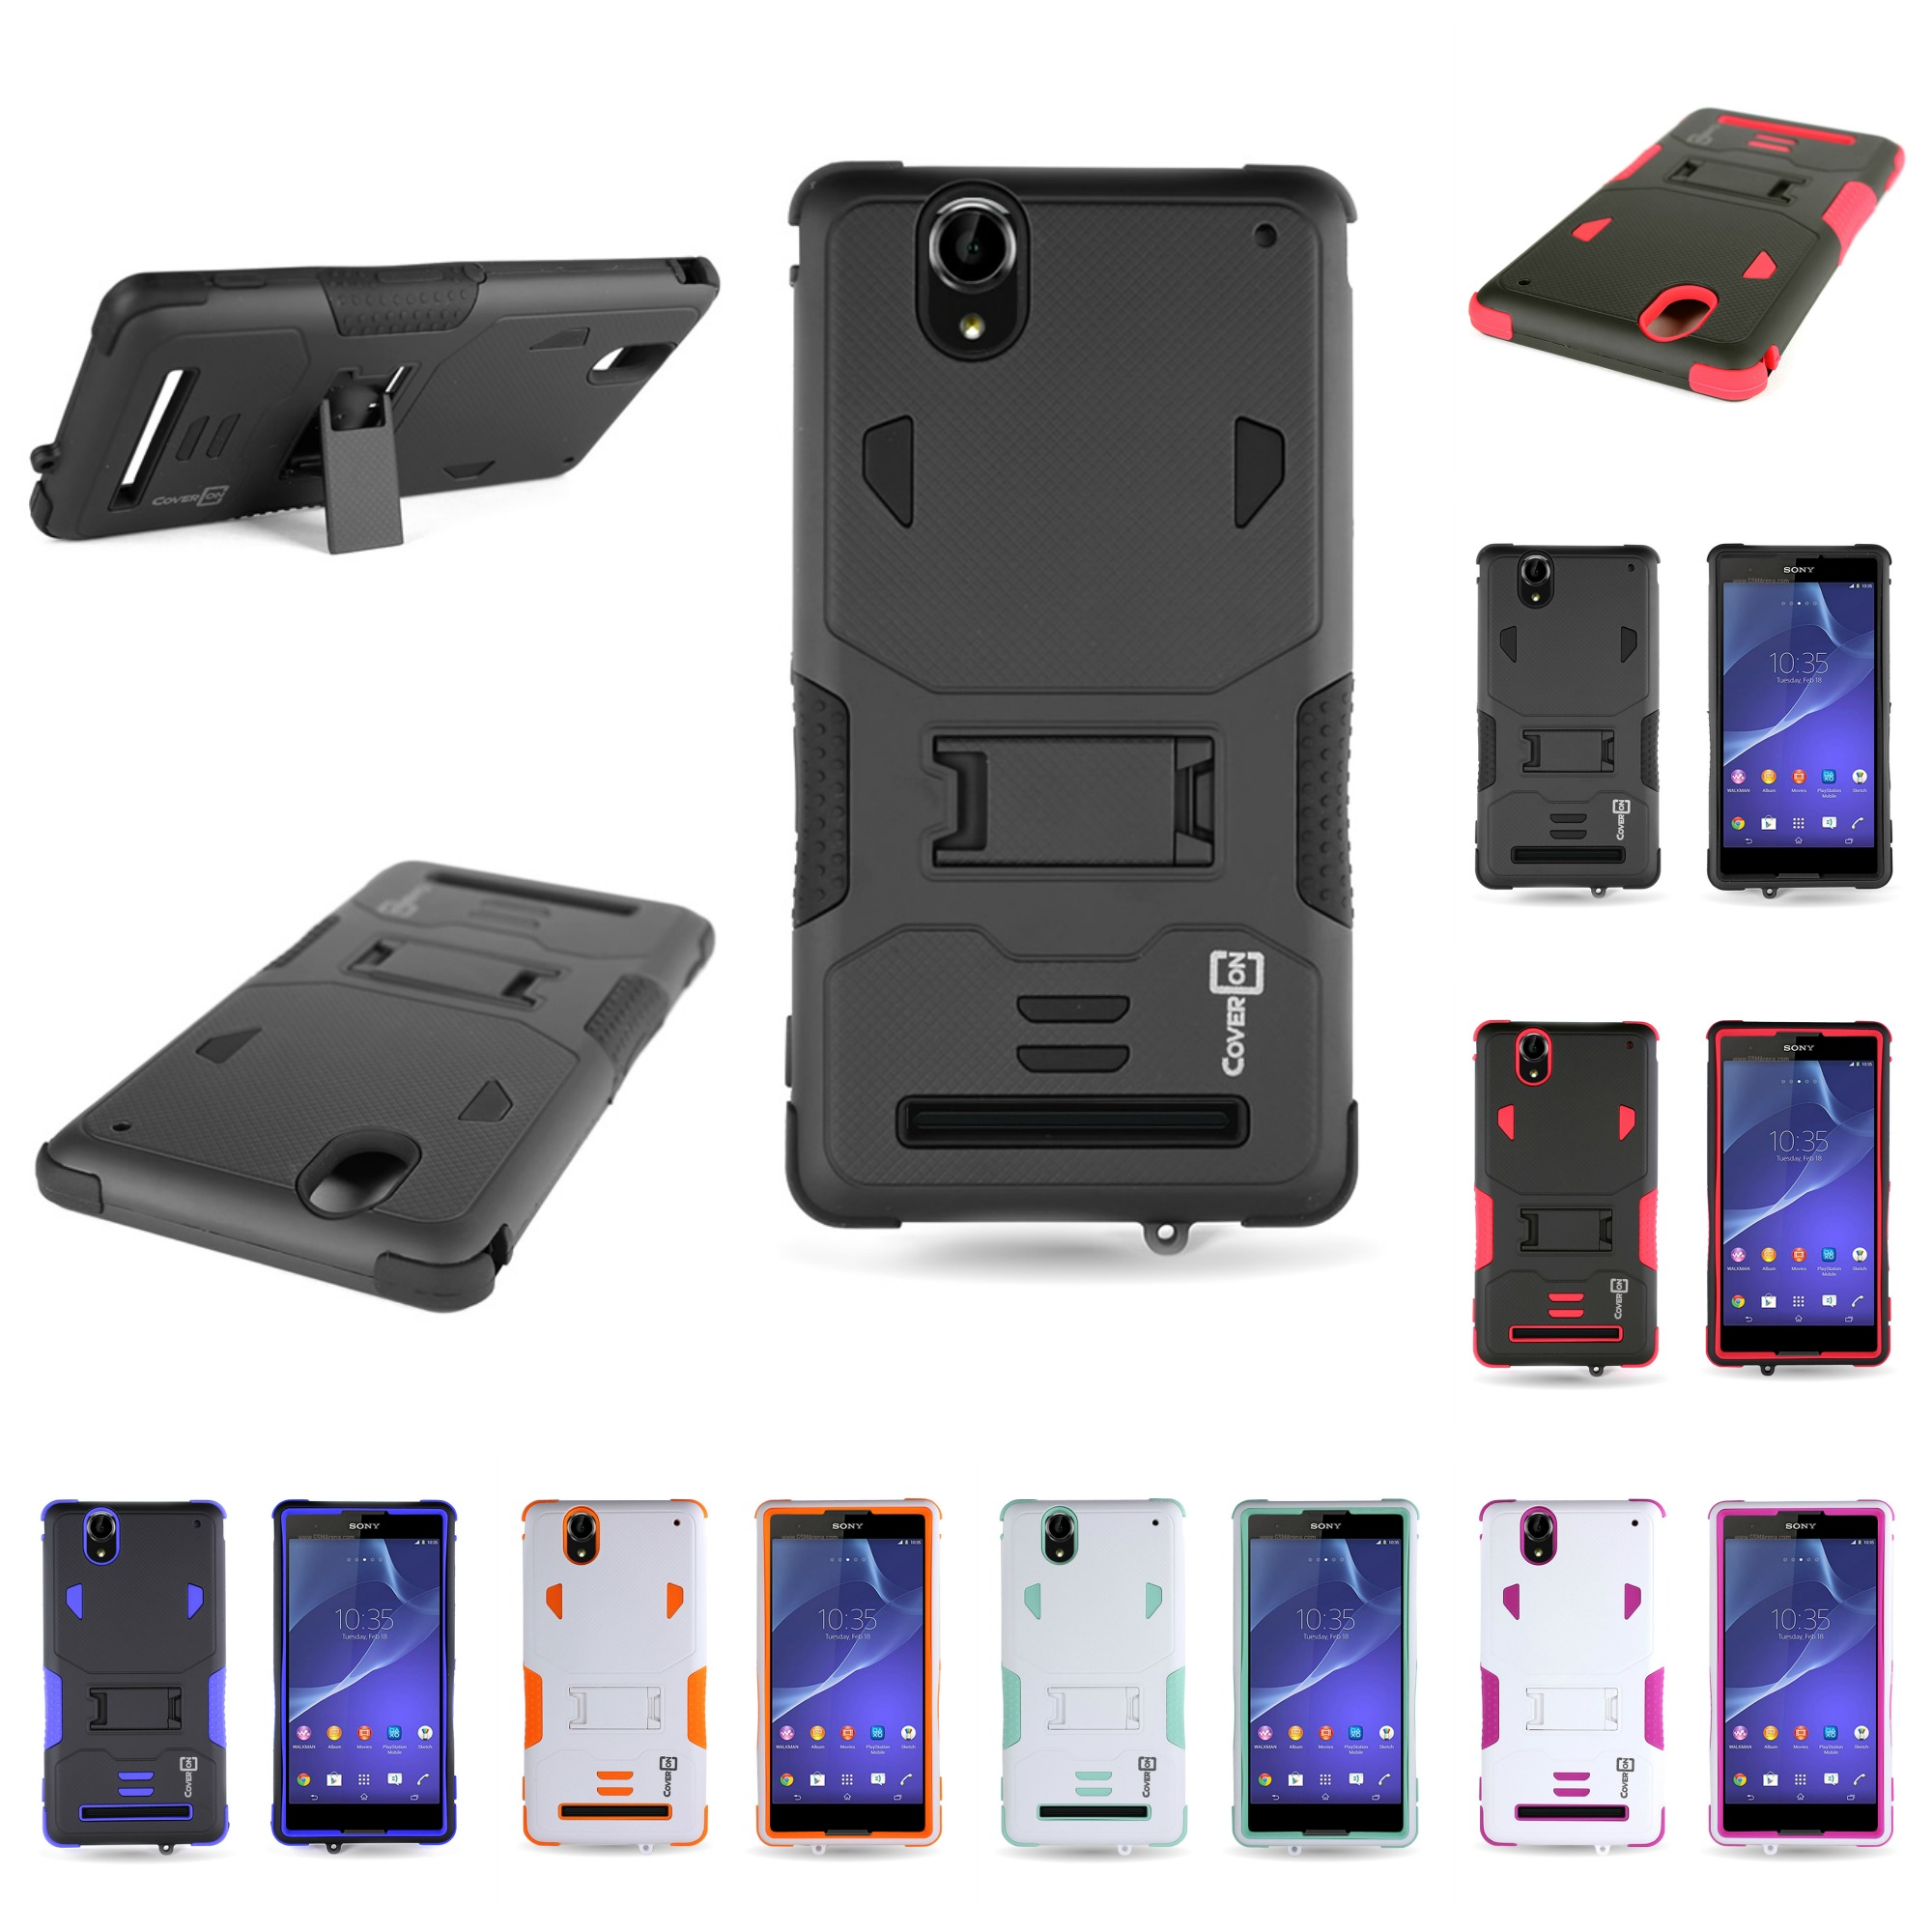 separation shoes 5958f 425de Details about For Sony Xperia T2 Ultra Dual Layer Hybrid Stand Tough  Protective Cover Case